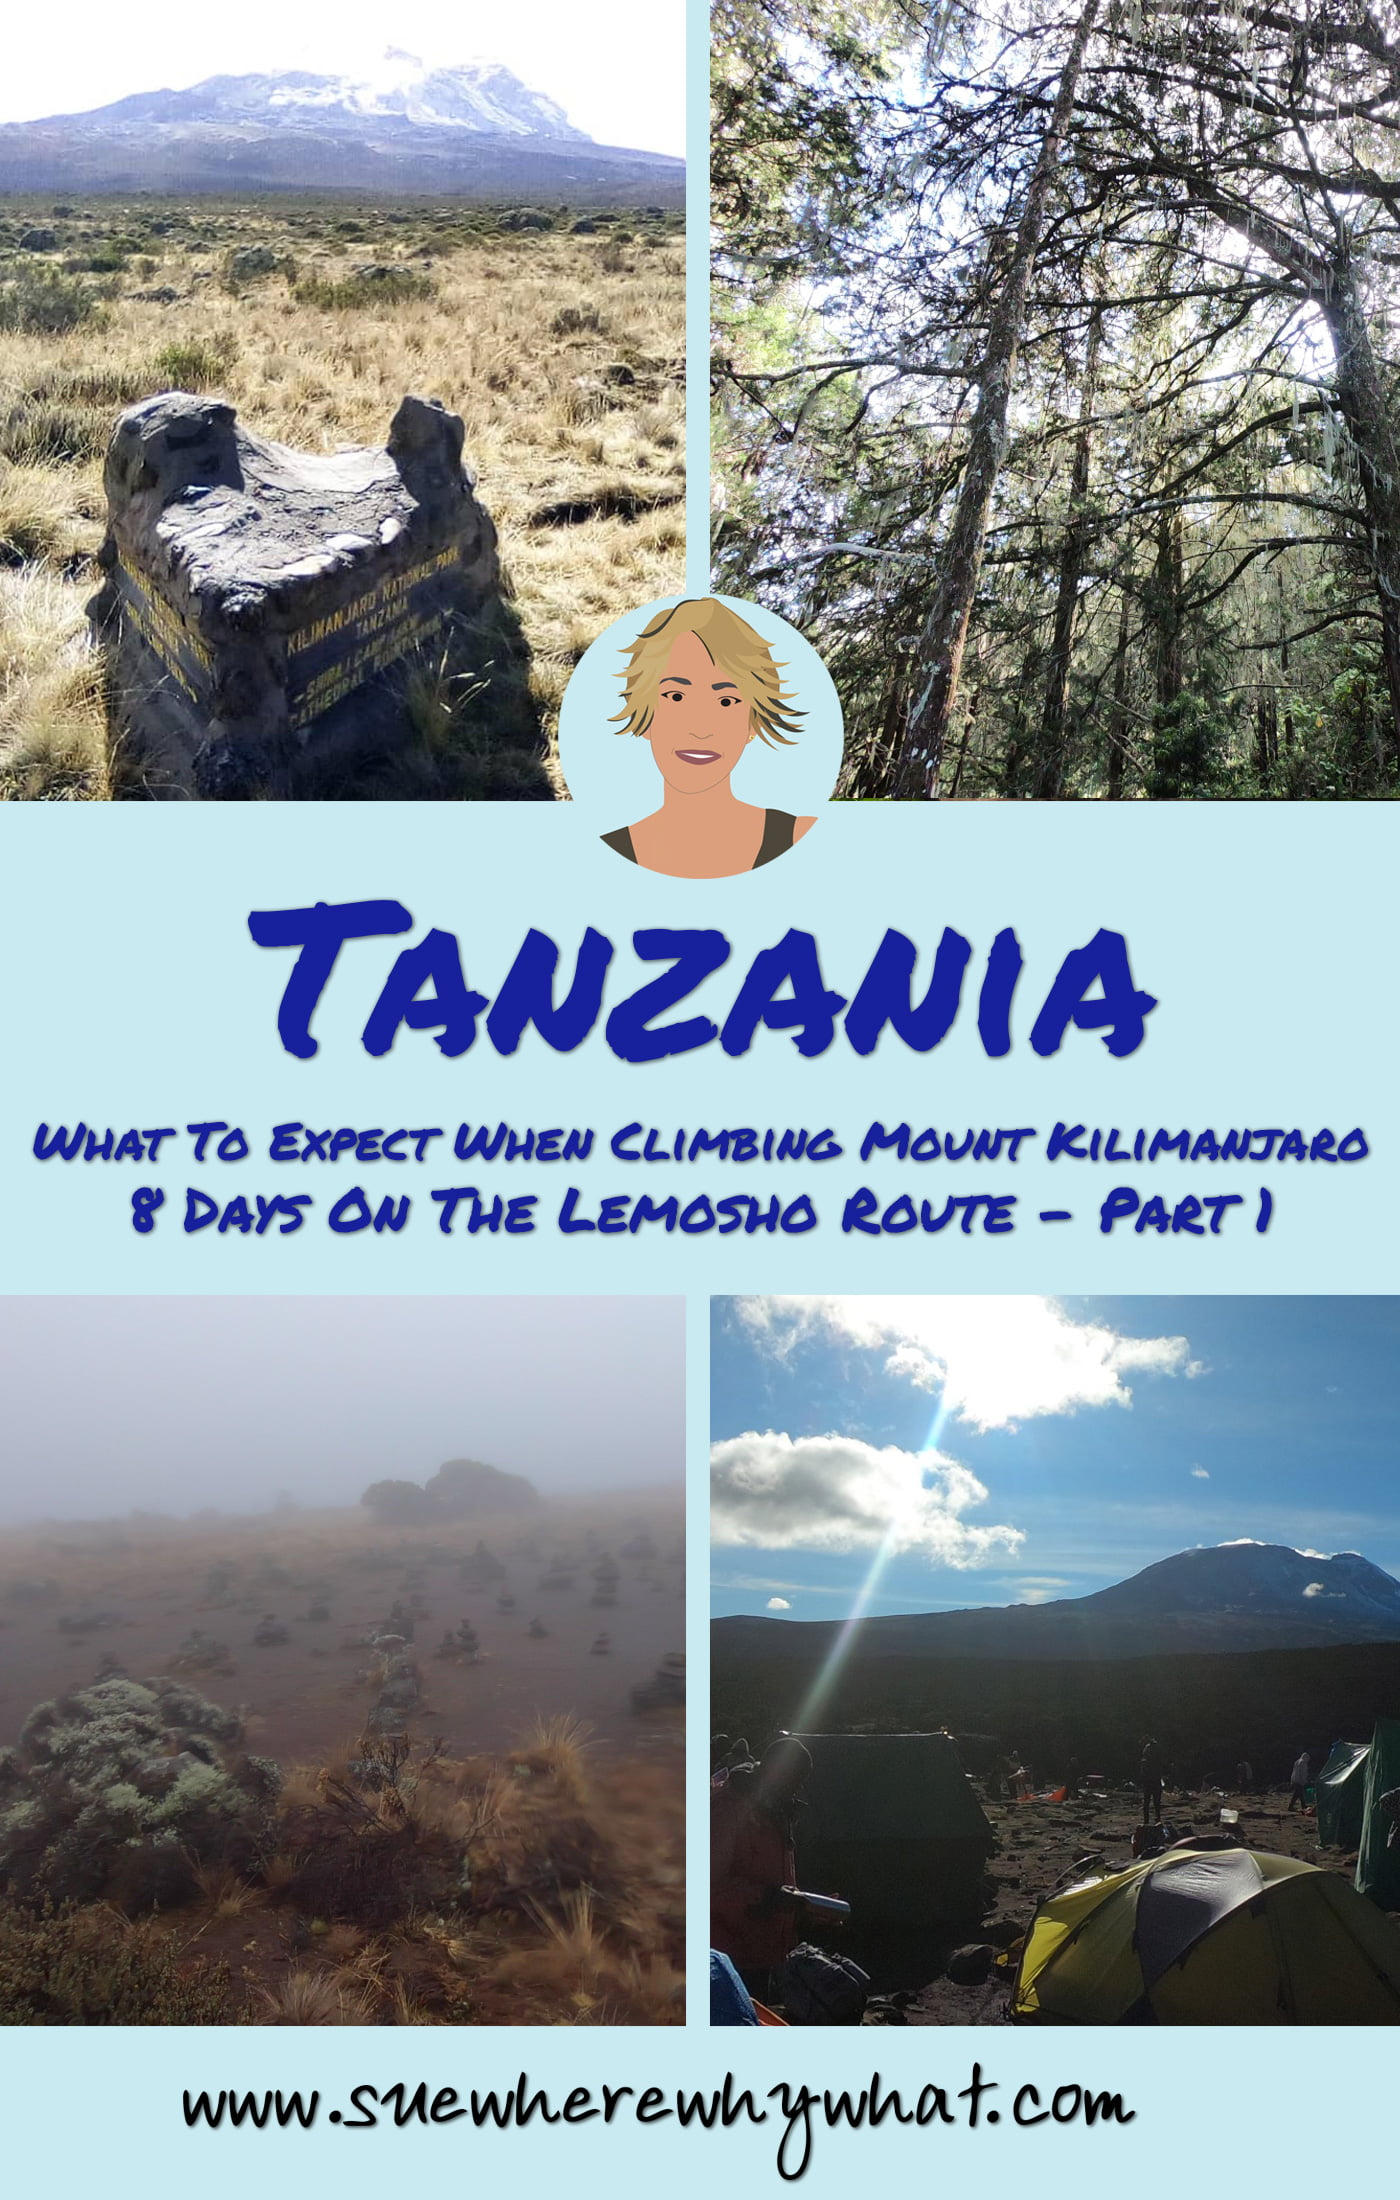 Climbing Mount Kilimanjaro in 8 Days – Lemosho Route. If you have ever wondered what it is like to hike Mount Kilimanjaro, here is the story of my first 3 days on the Lemosho Route. Includes what to expect from the route, the distances, the camps & the altitude.